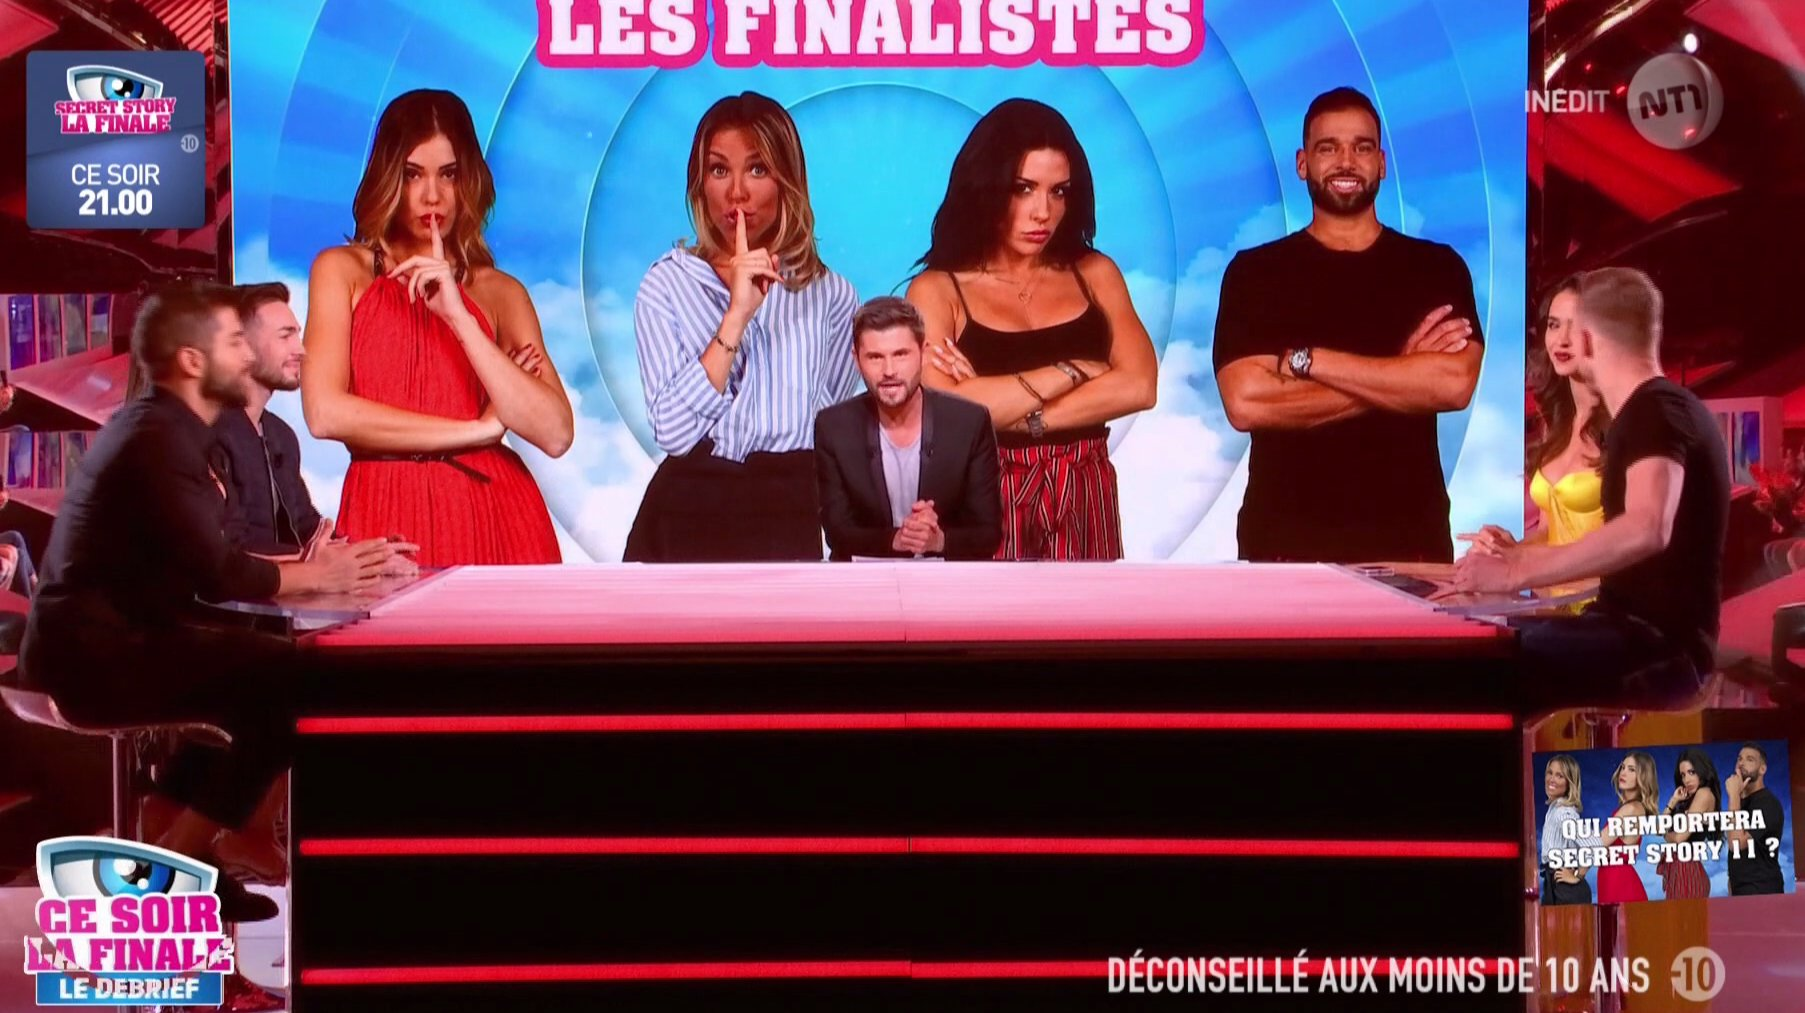 RT @SecretStory_TF1: #SS11 Une table d'exception ce soir autour de @Tof_Beaugrand !! https://t.co/l6LjdUQ3ur